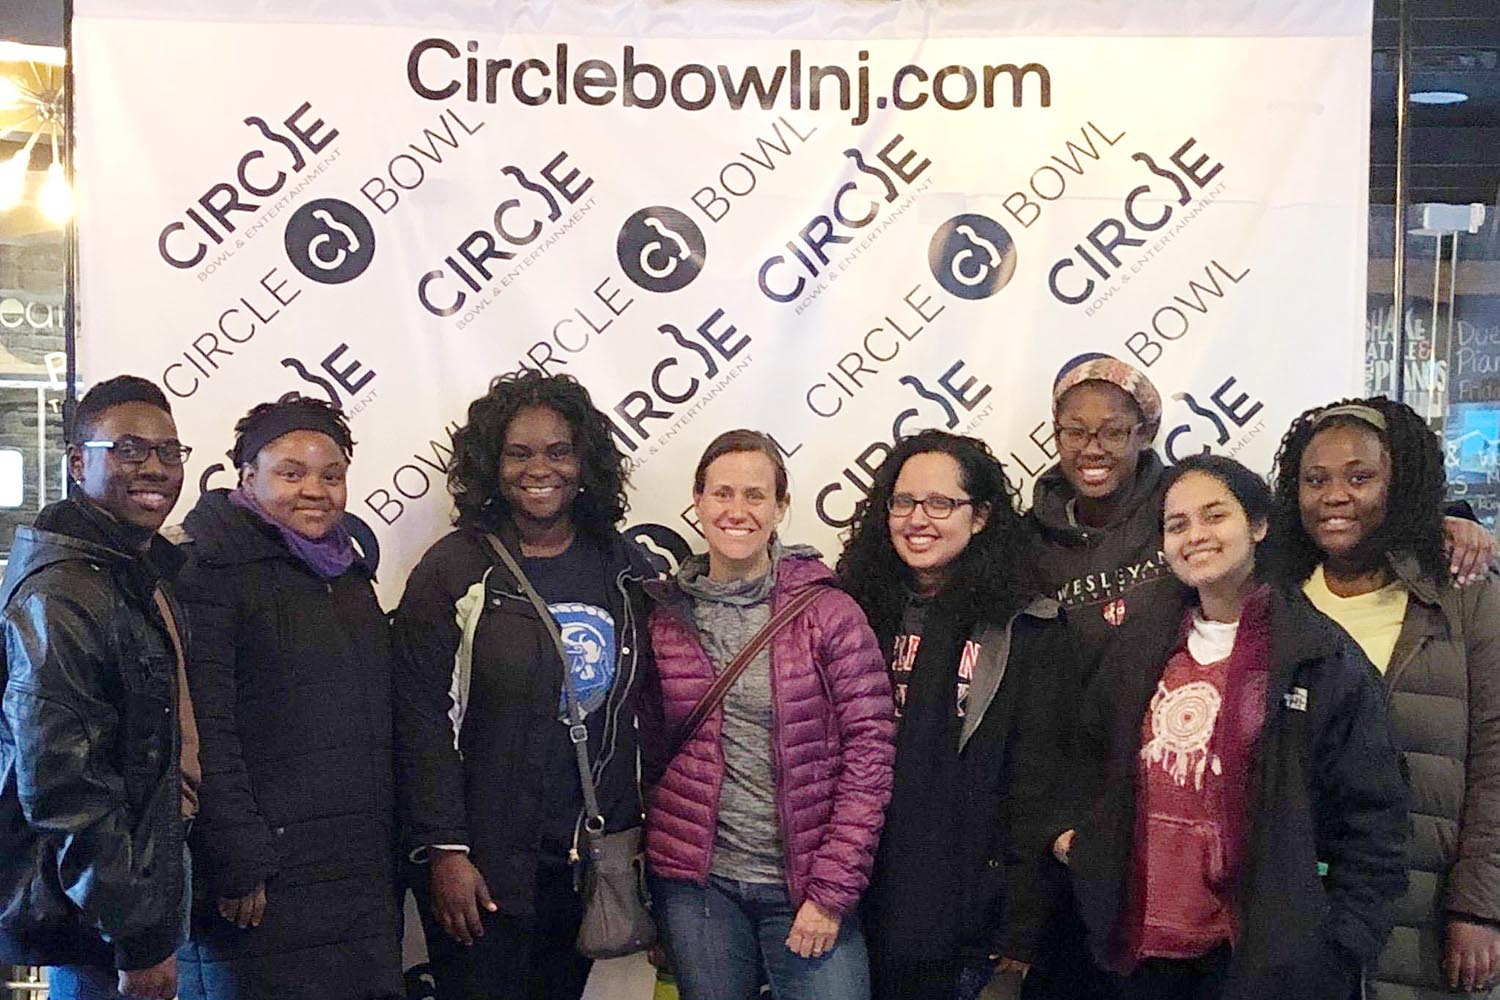 The group played a few rounds of bowling at Circle Bowl in Ledgewood, N.J.